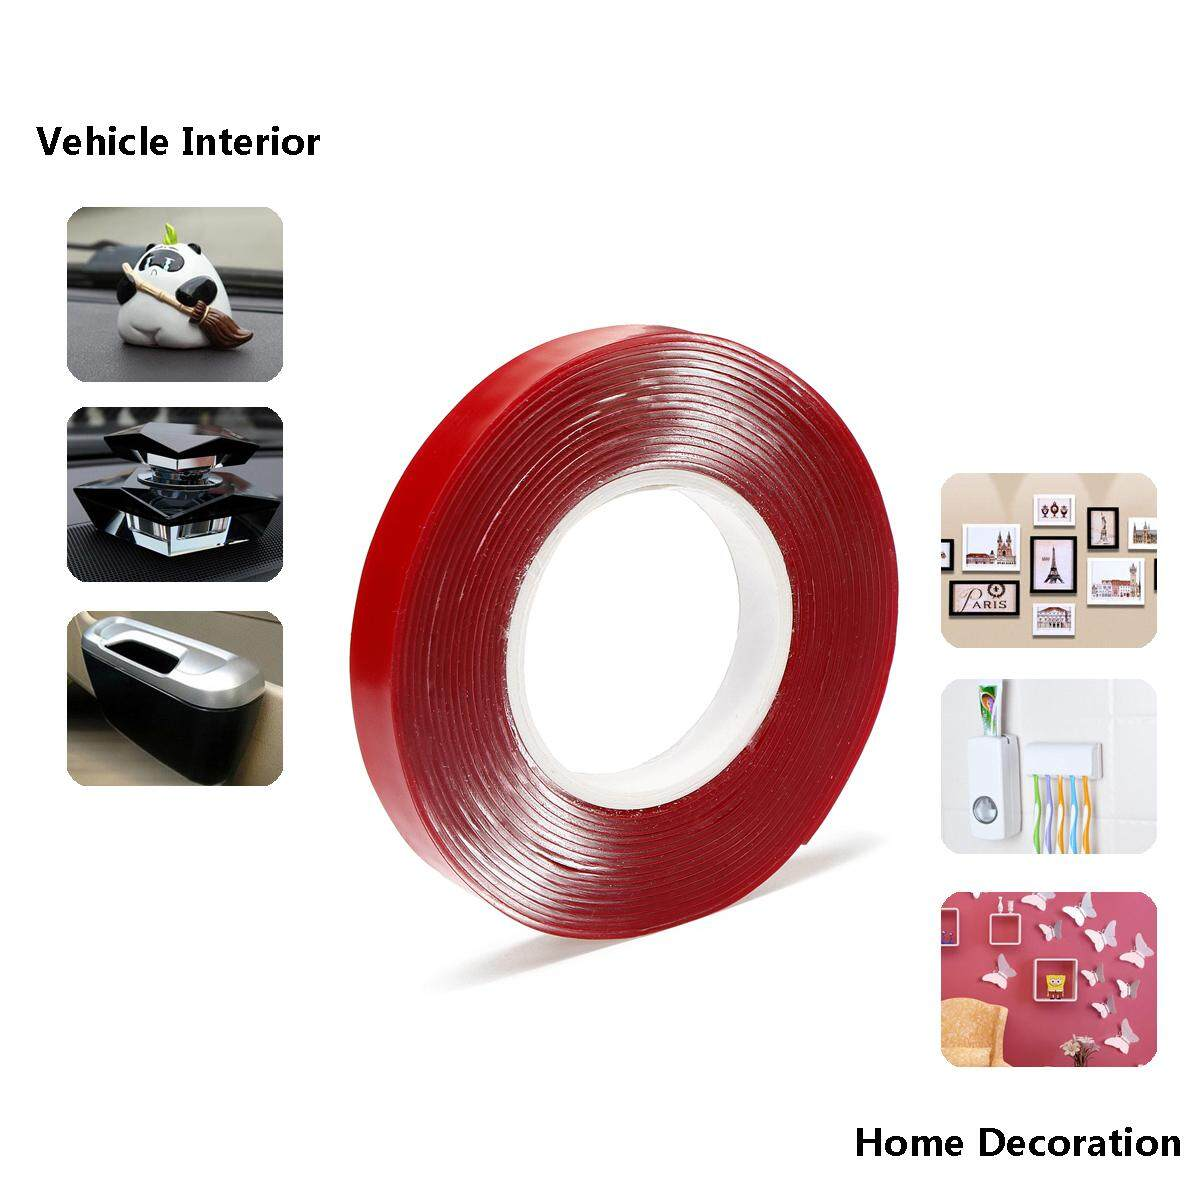 3m strong acrylic adhesive film 30mm 3M4910VHB double sided tape for glass High temperature resistant non-trace